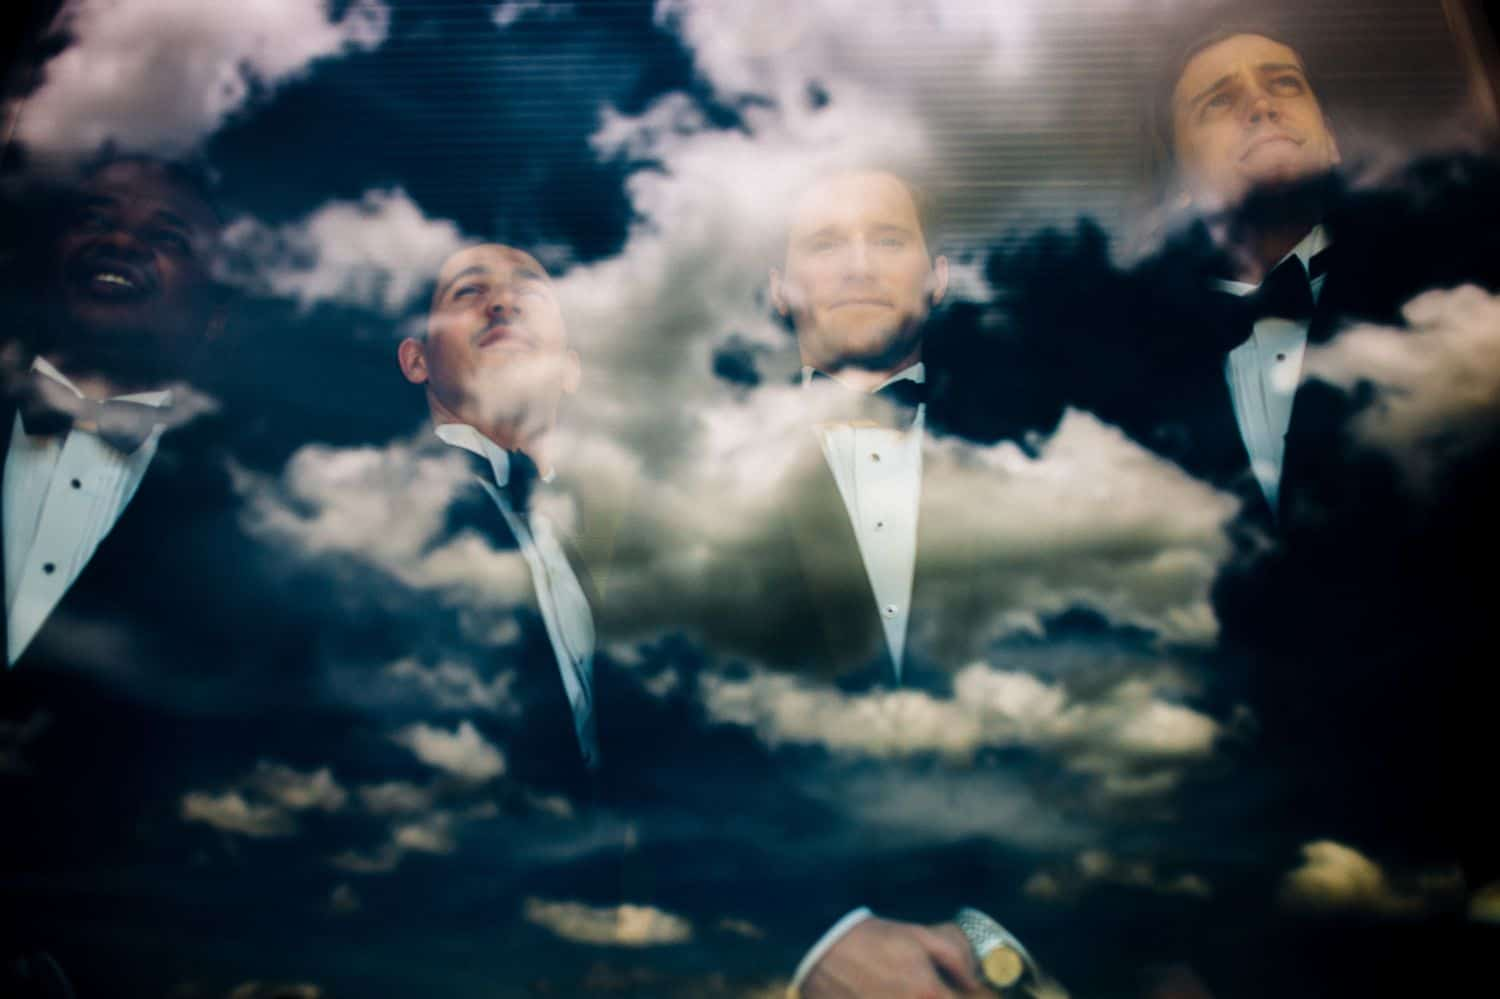 A groom and his groomsmen pose for a double exposure portrait with a deep blue cloudy sky